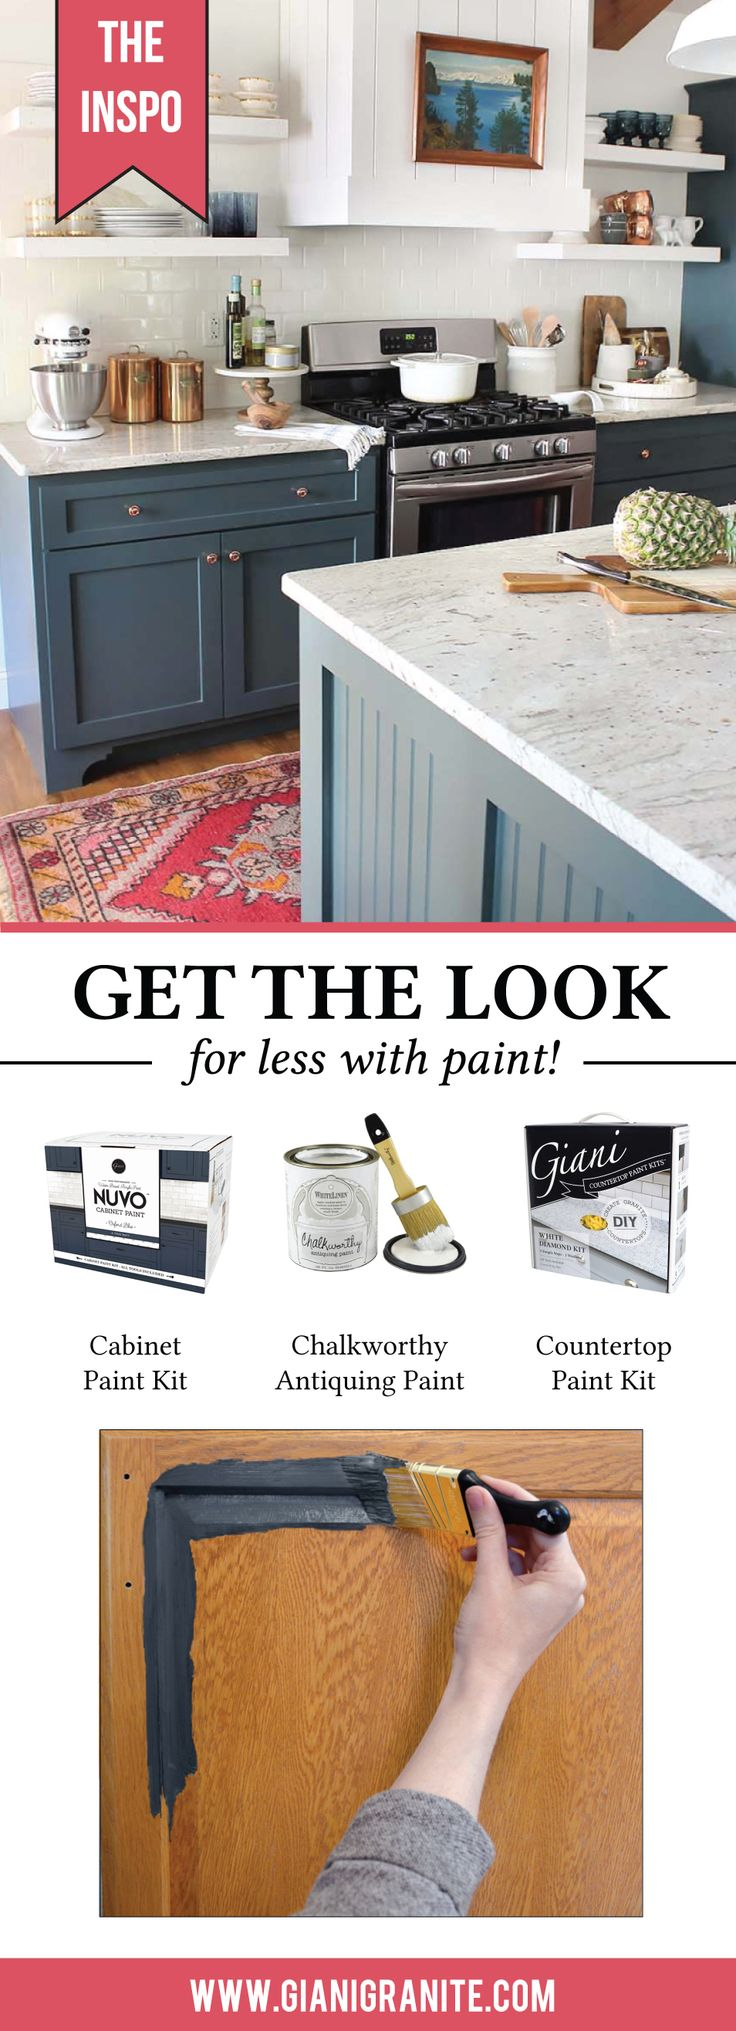 The 25+ best Nuvo cabinet paint ideas on Pinterest | Giani granite ...